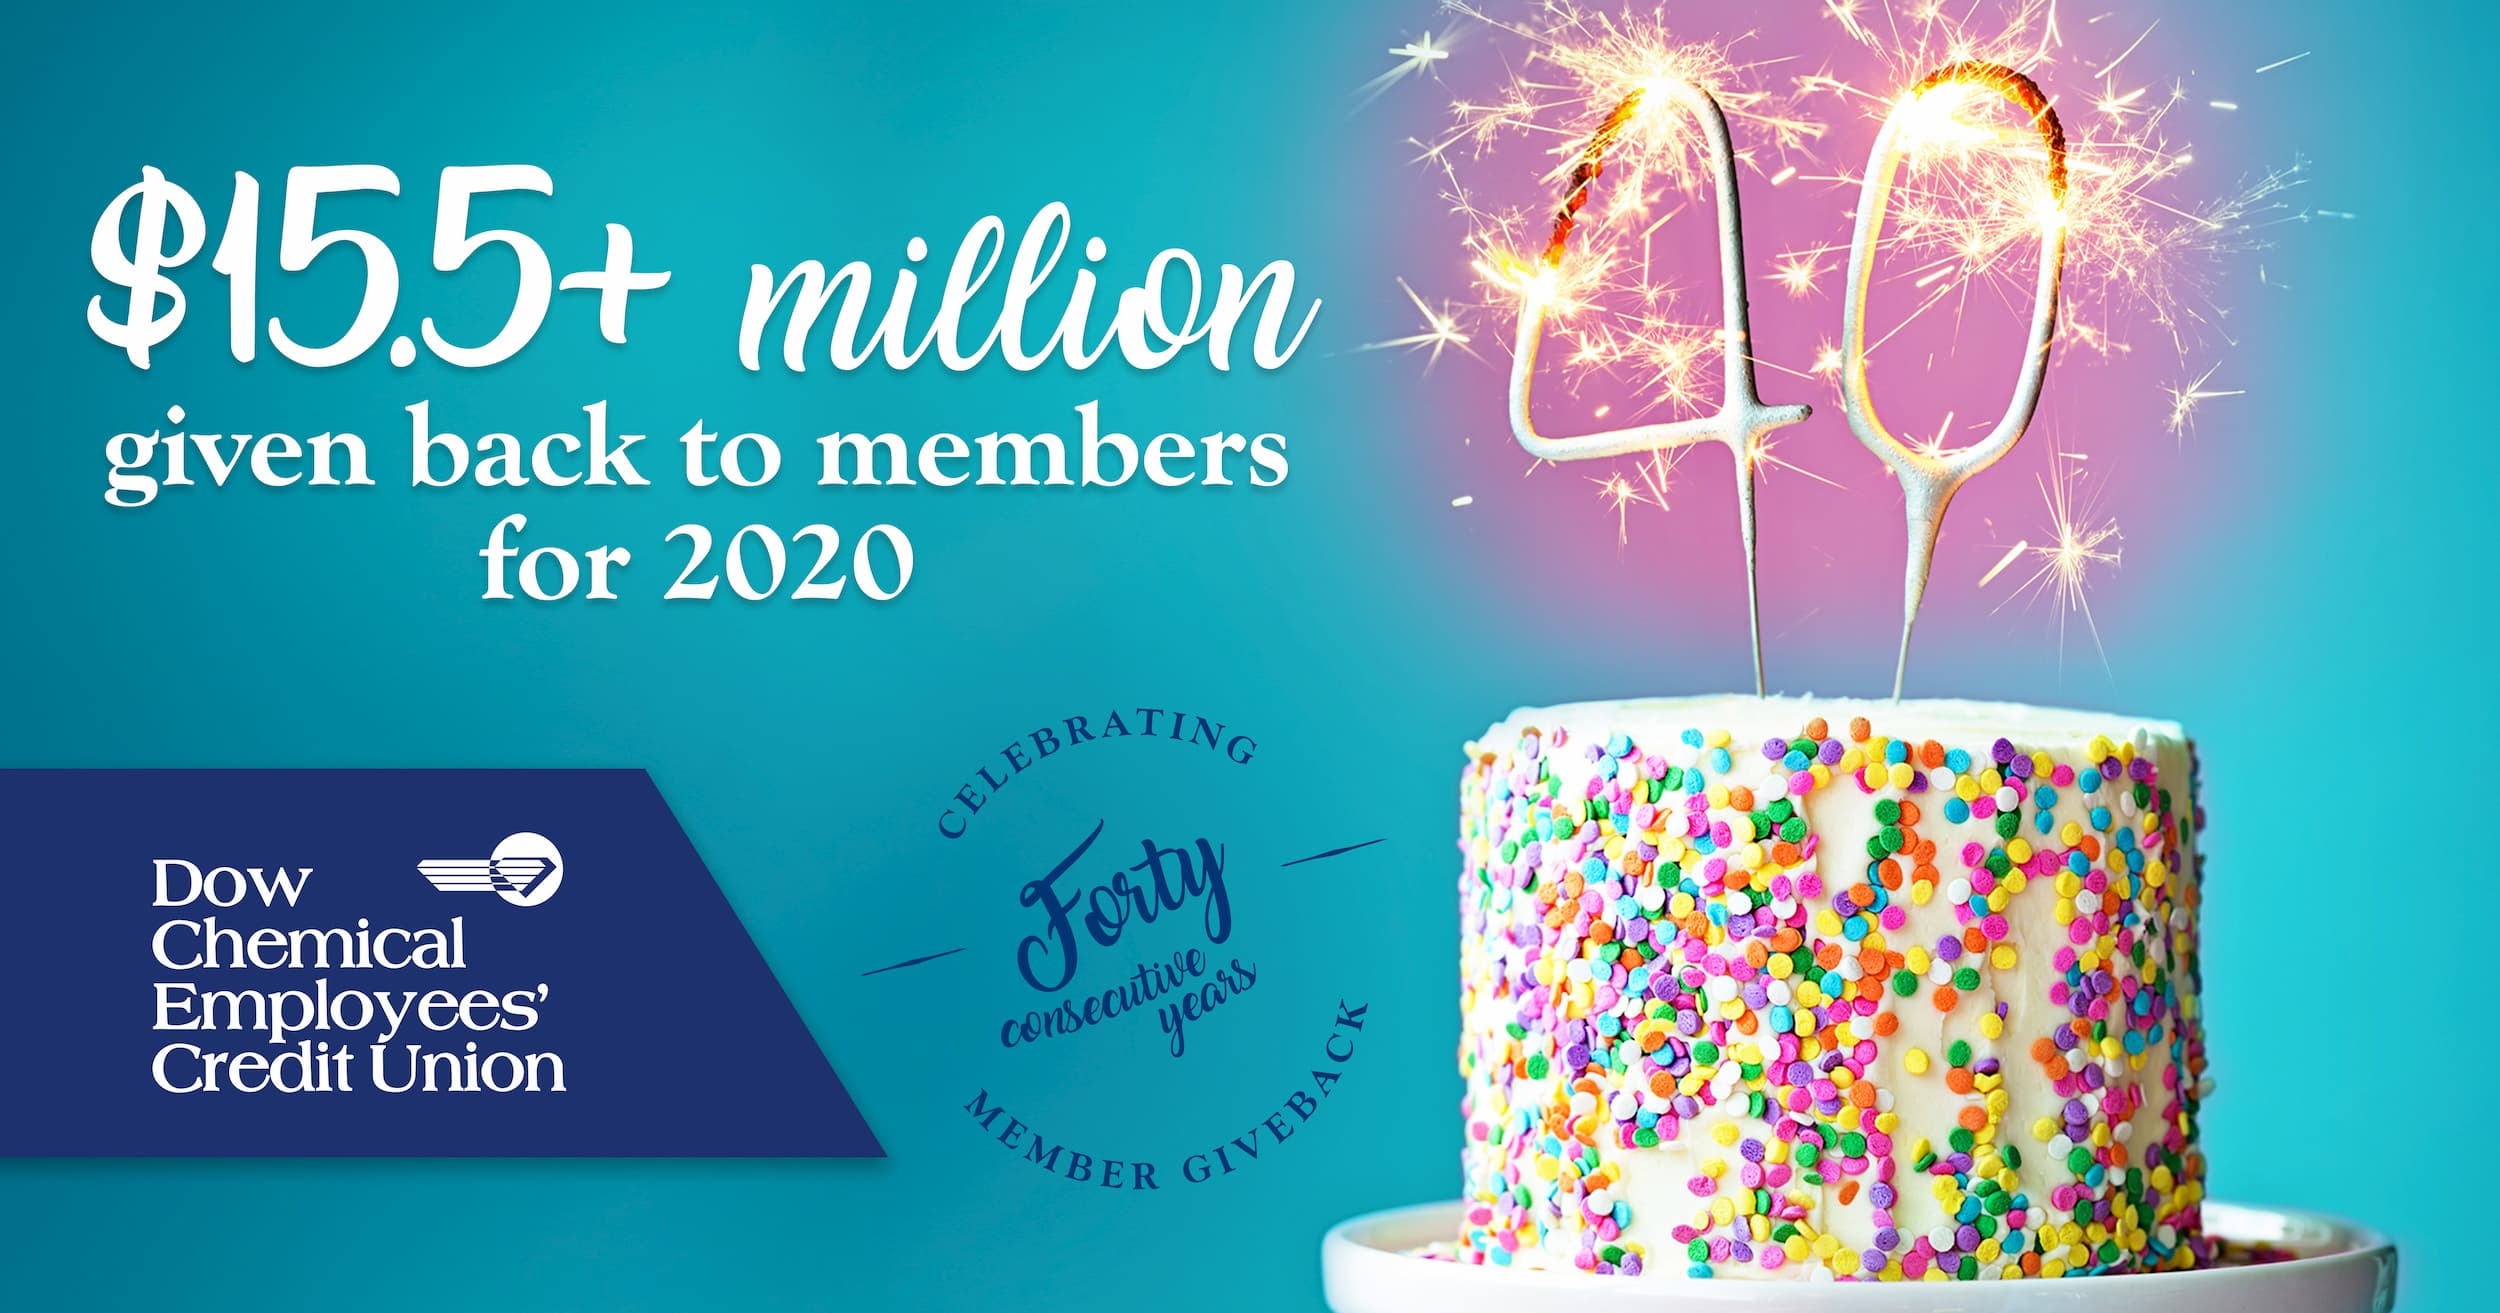 "A banner image with a cake and a sparkly candle burning in the shape of a 40 with text that reads, ""$15.5 plus million given back to members for 2020."" Below, some text reads, ""Celebrating forty consecutive years of member giveback."